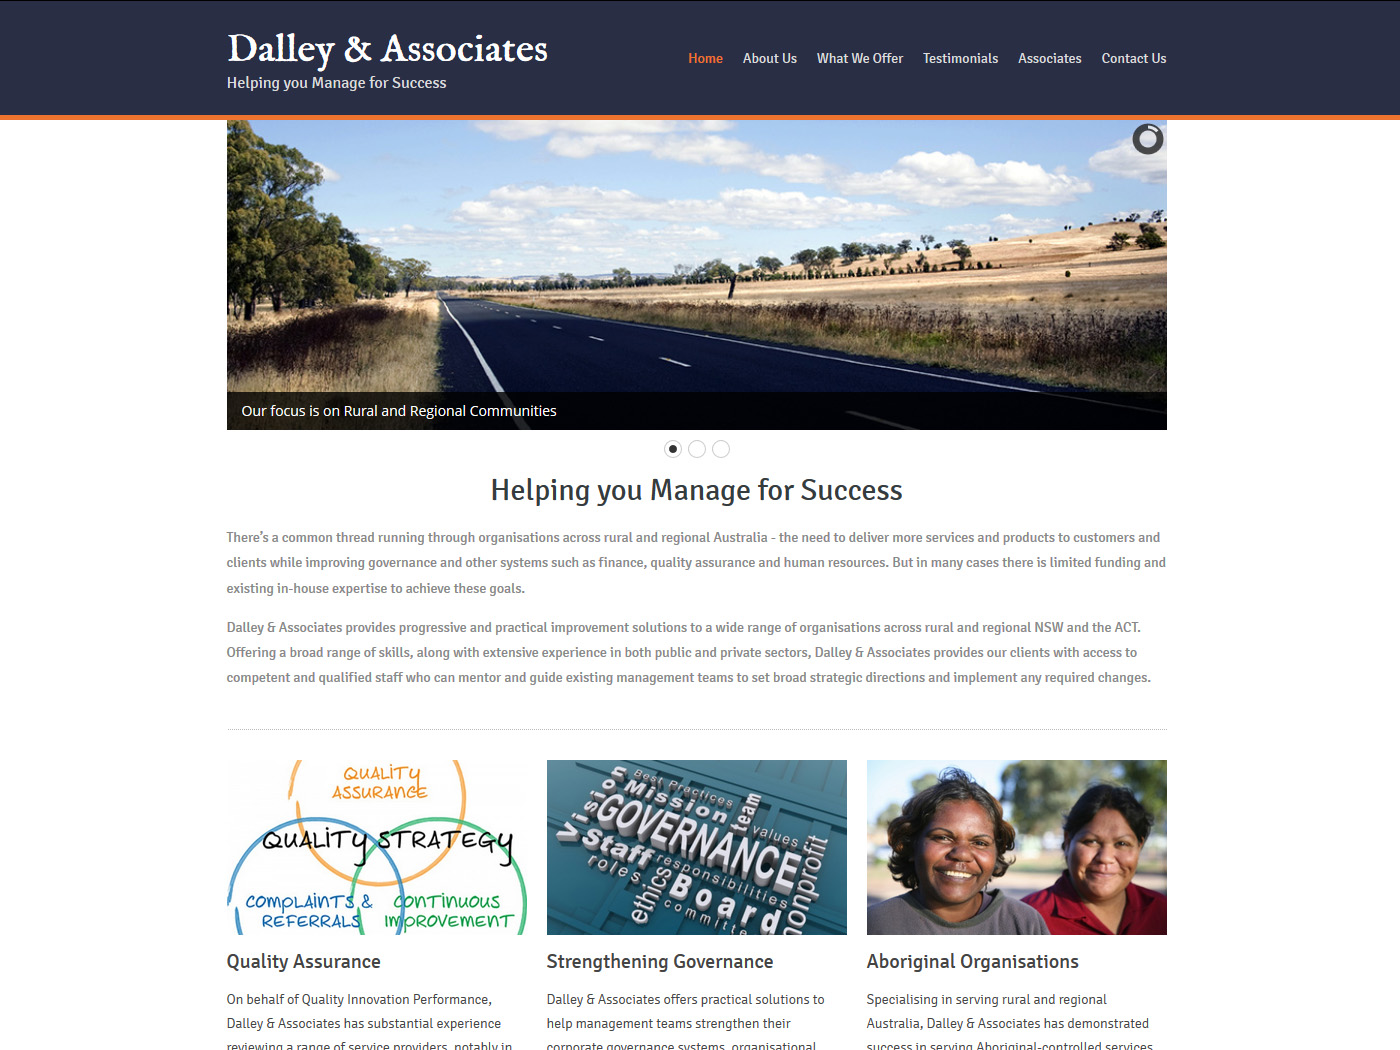 Dalley and Associates (Praxis Interactive)